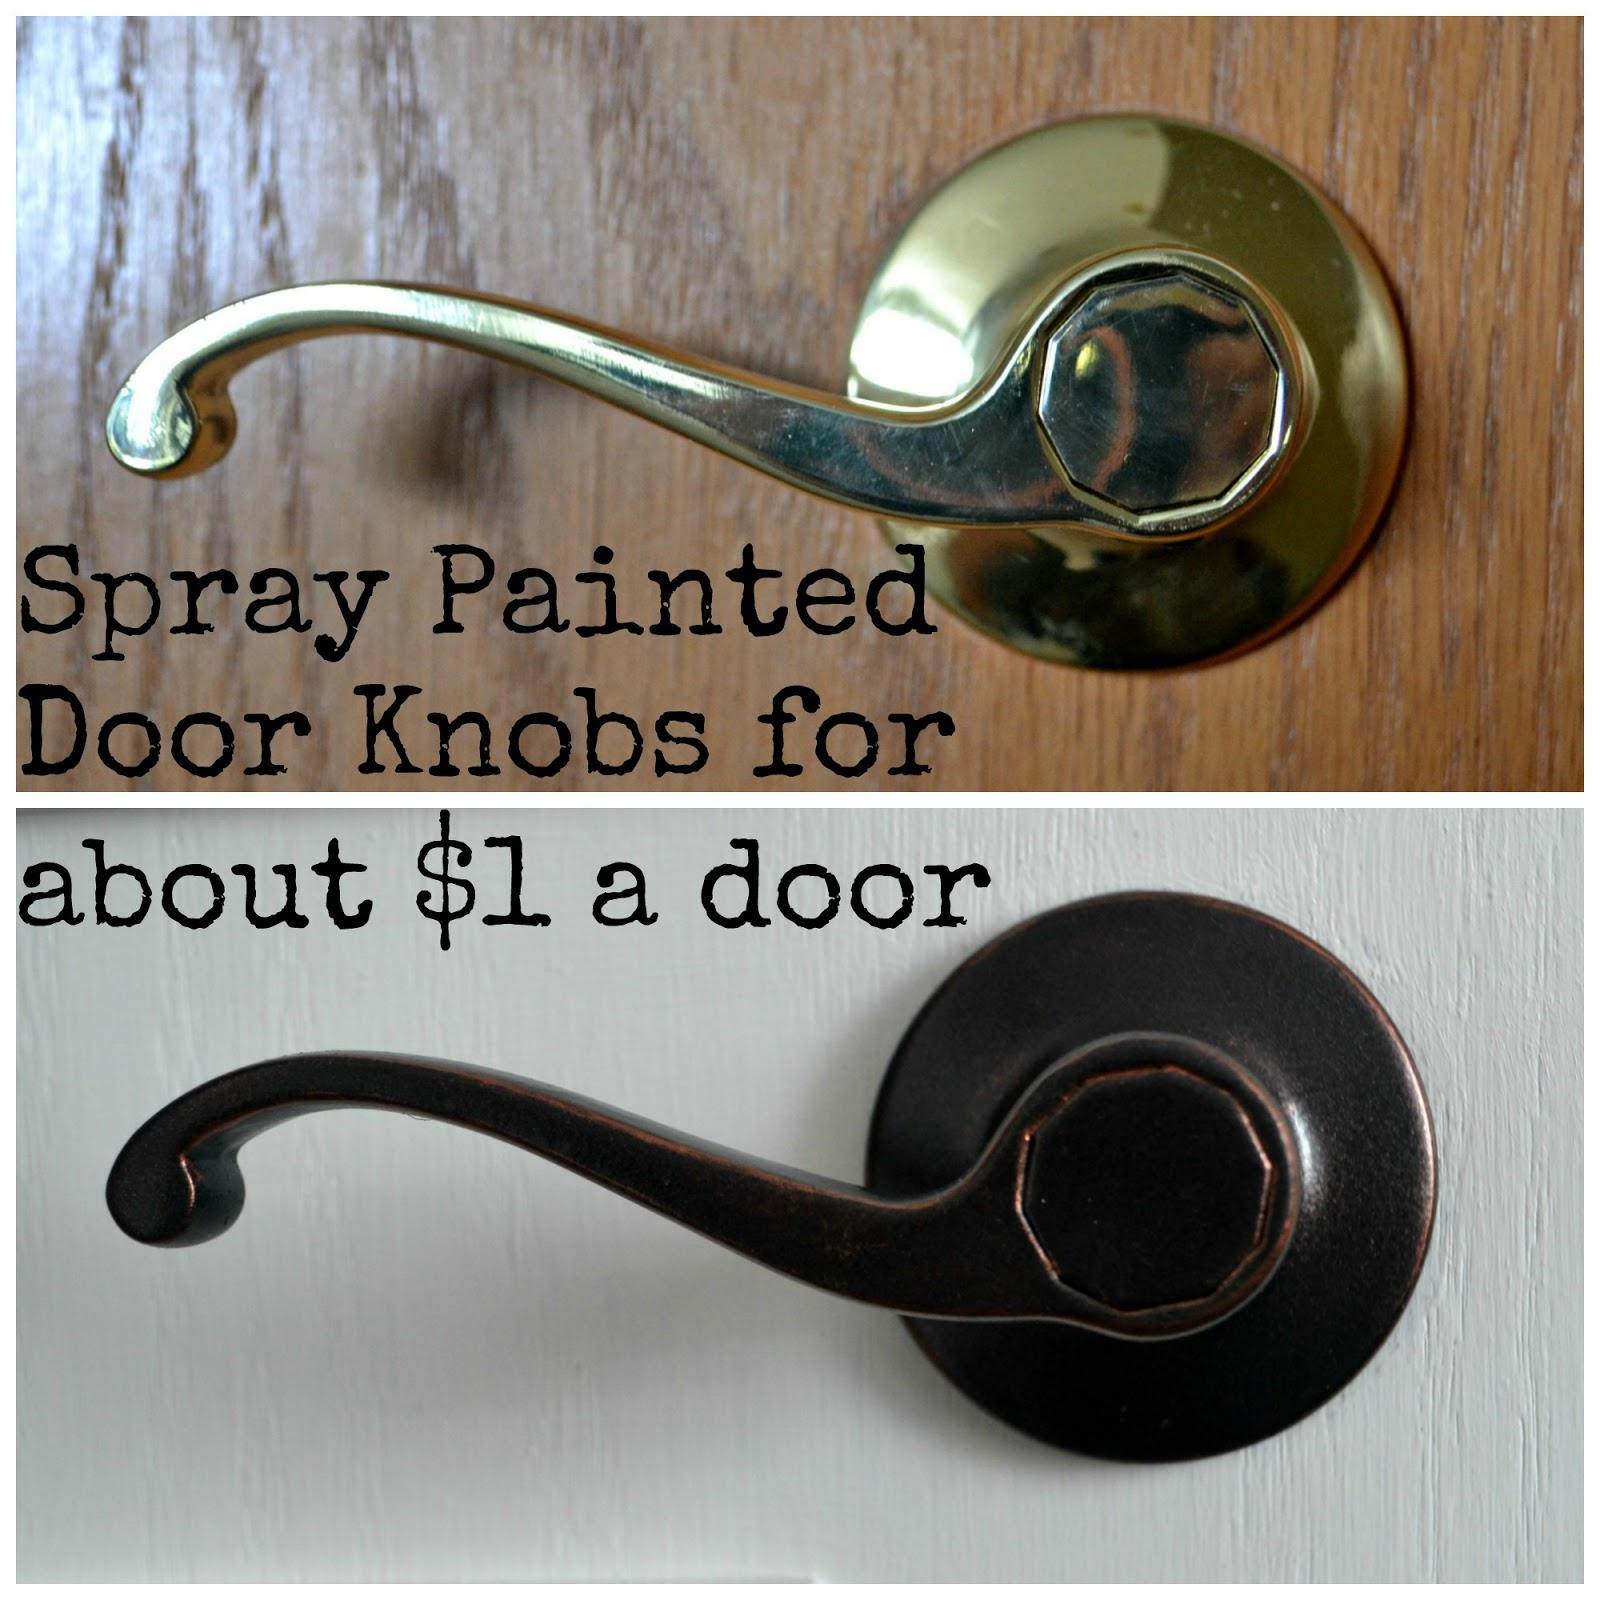 DIY Spray Painted Doorknobs From Cheap Brass to Expensive Oil